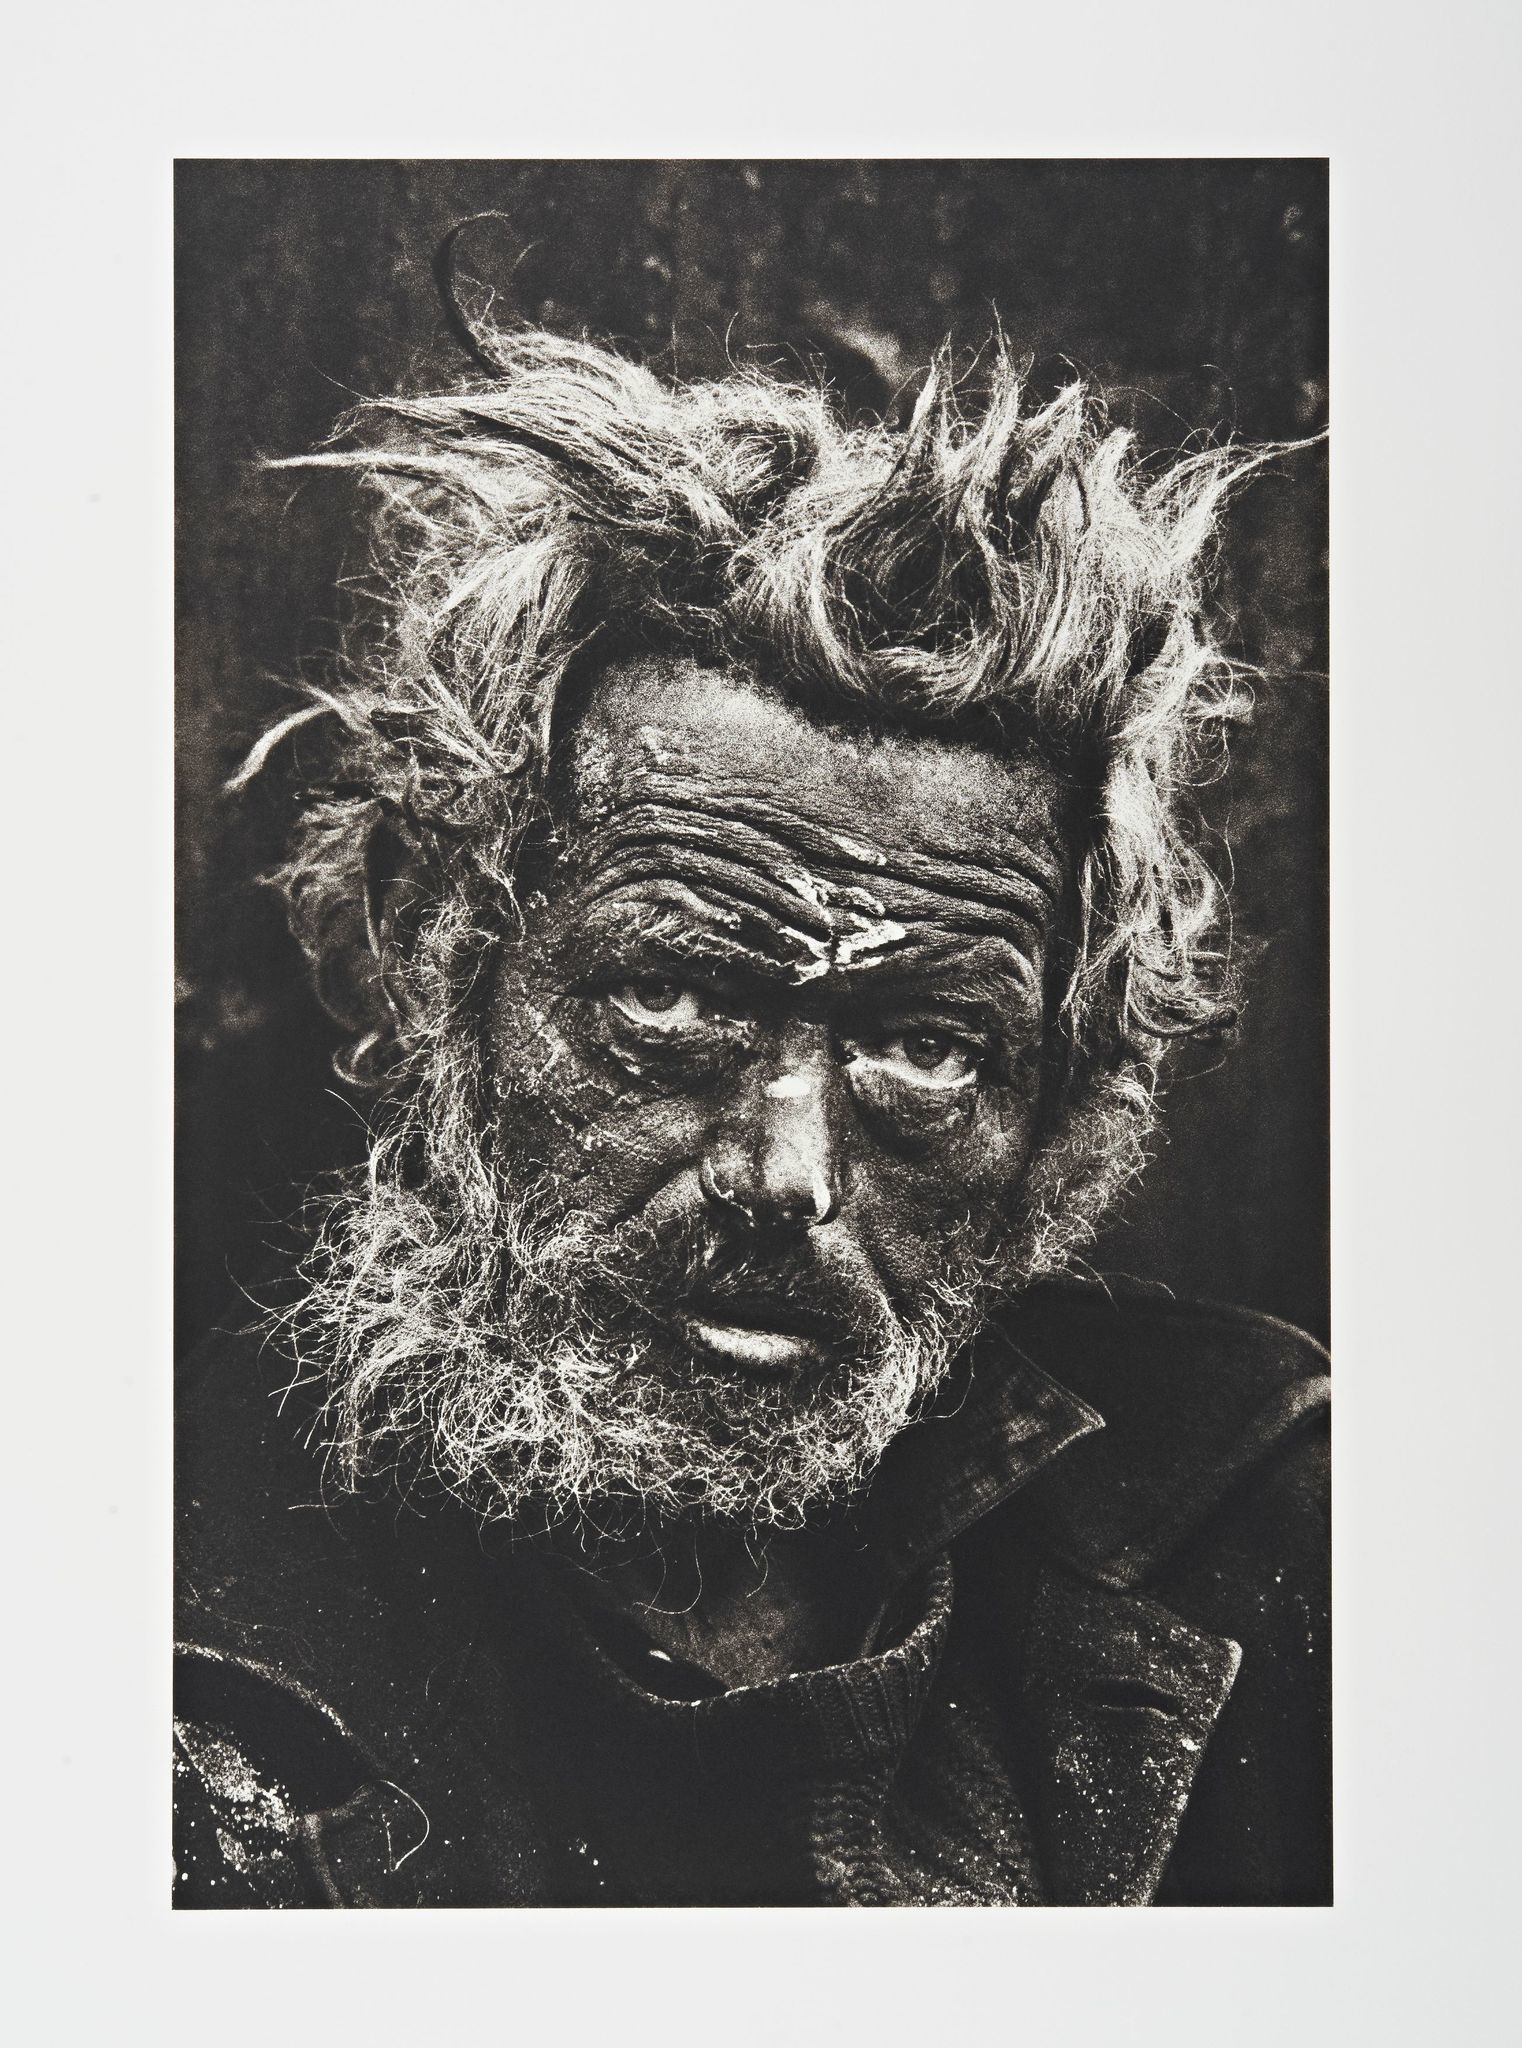 Don McCullin at Hauser & Wirth